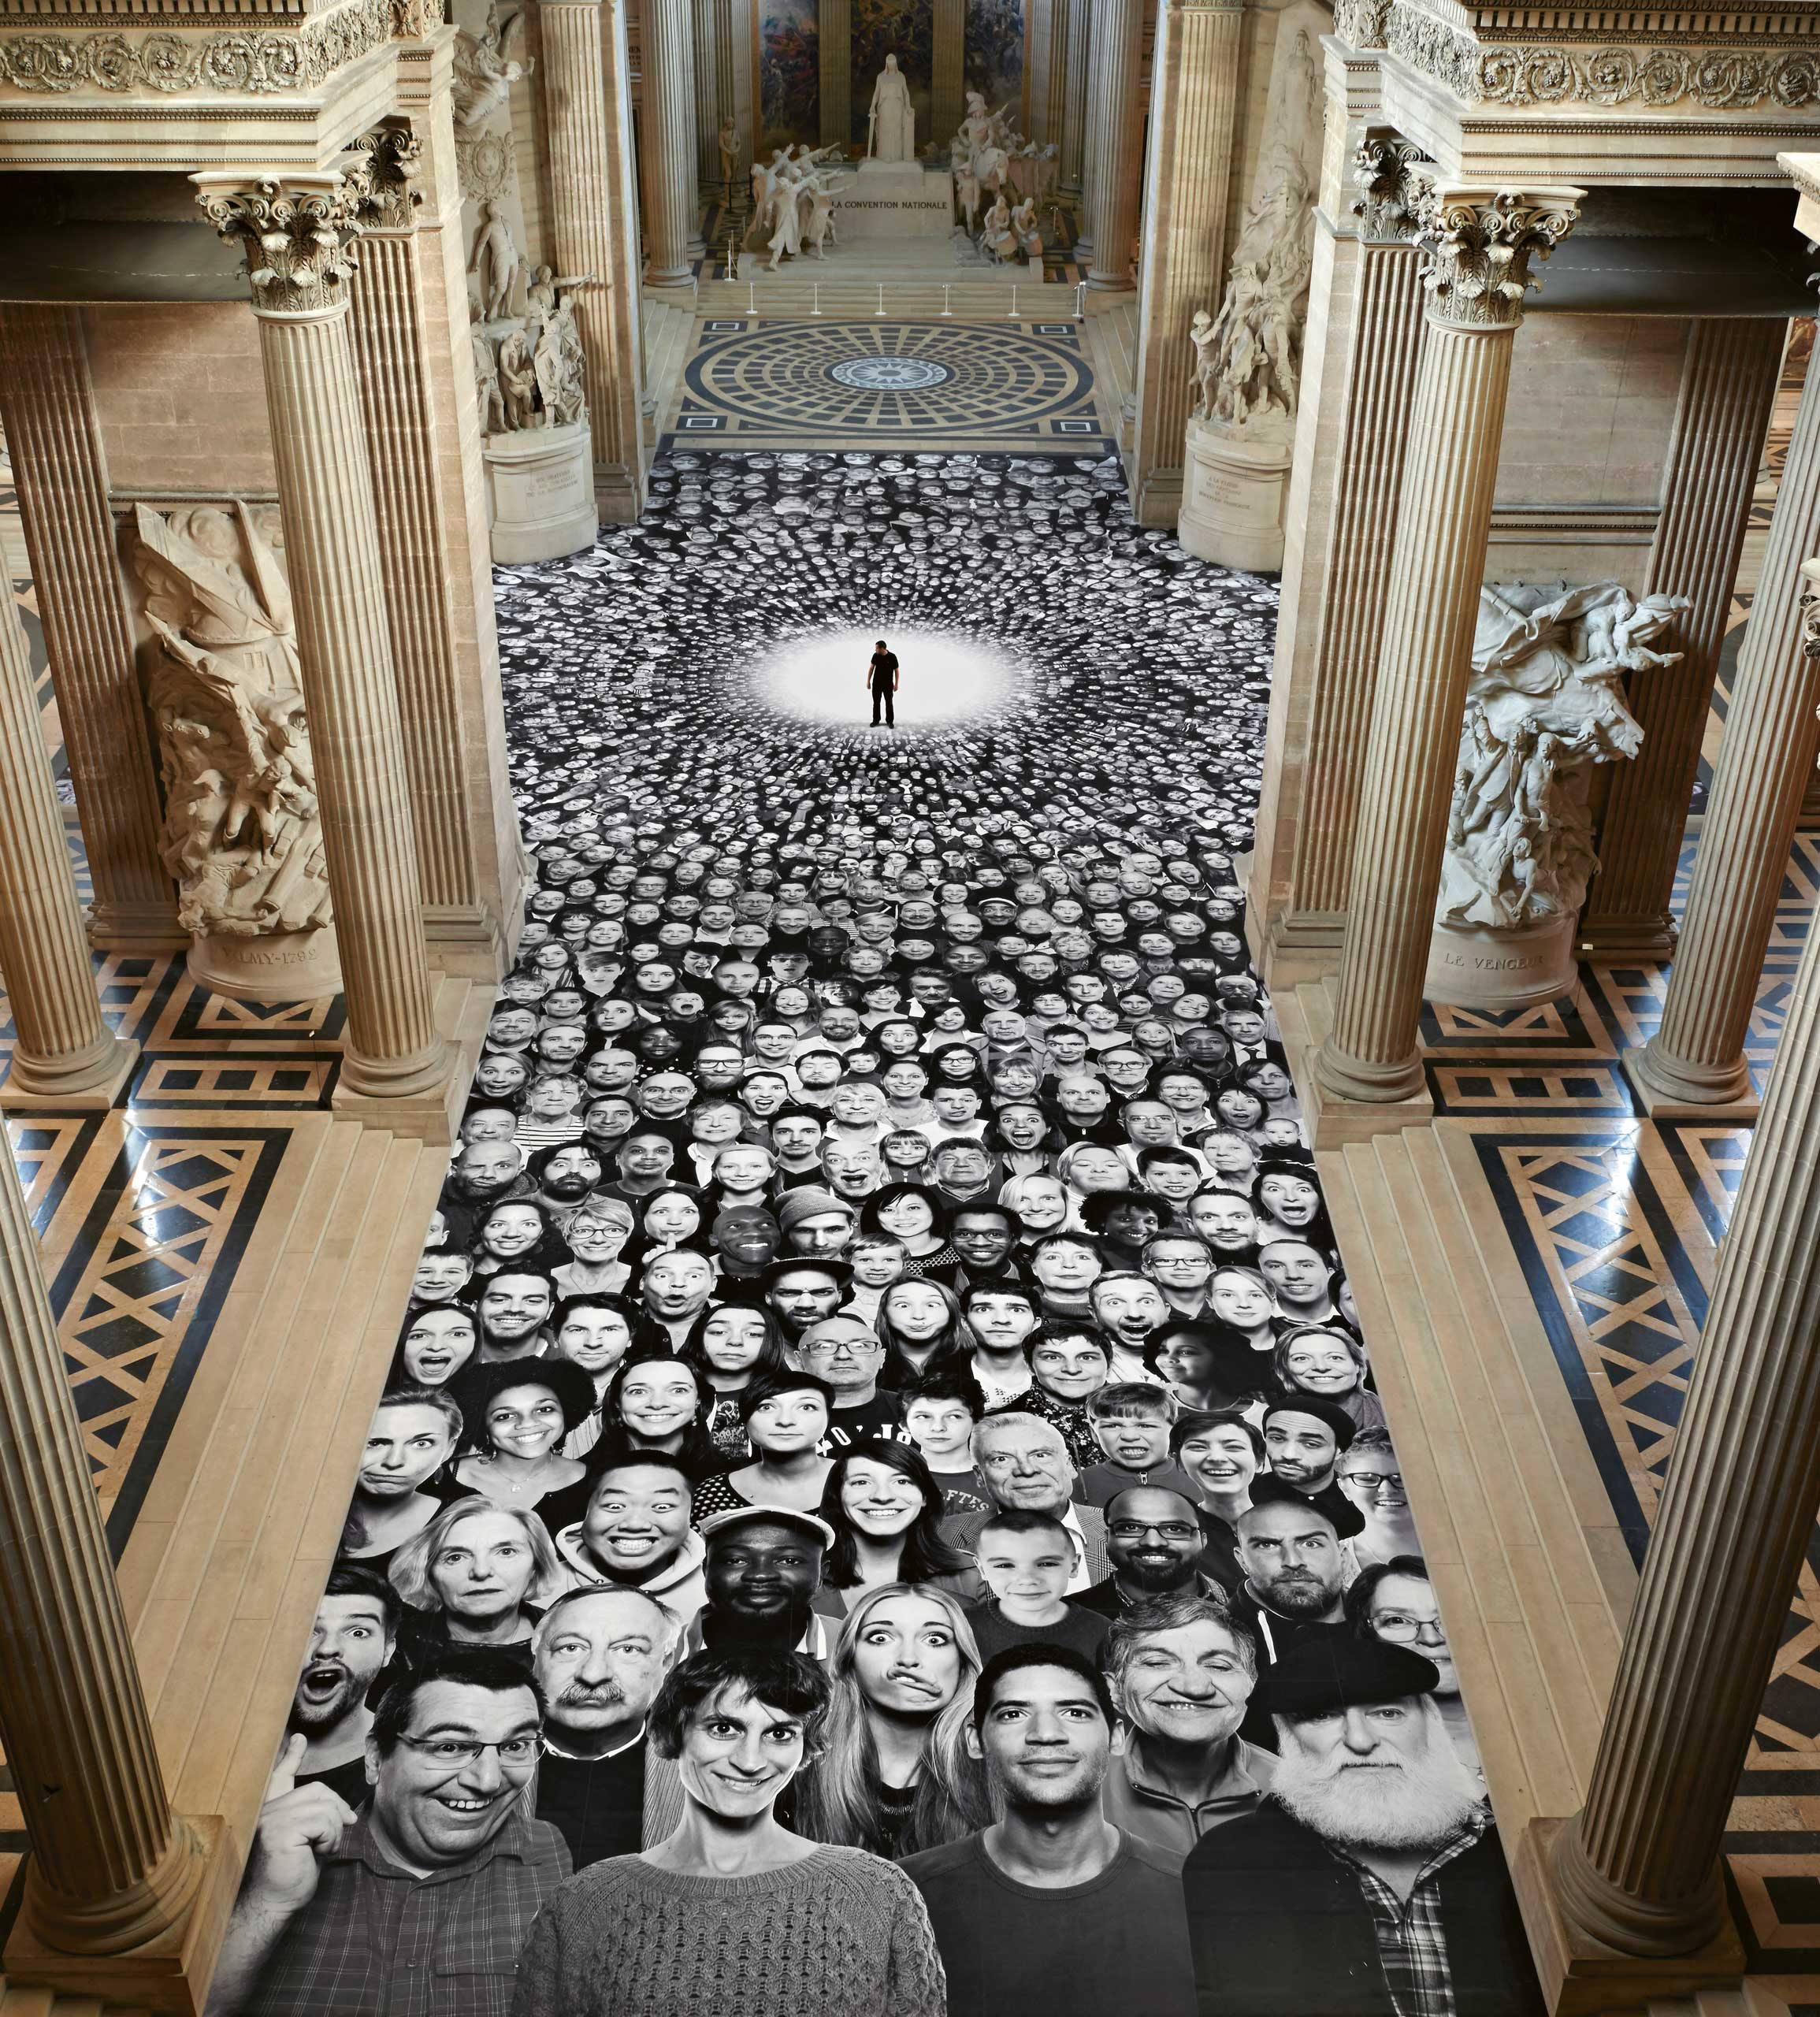 Inside Out: The nave, Pantheon, Paris, France, 2014.